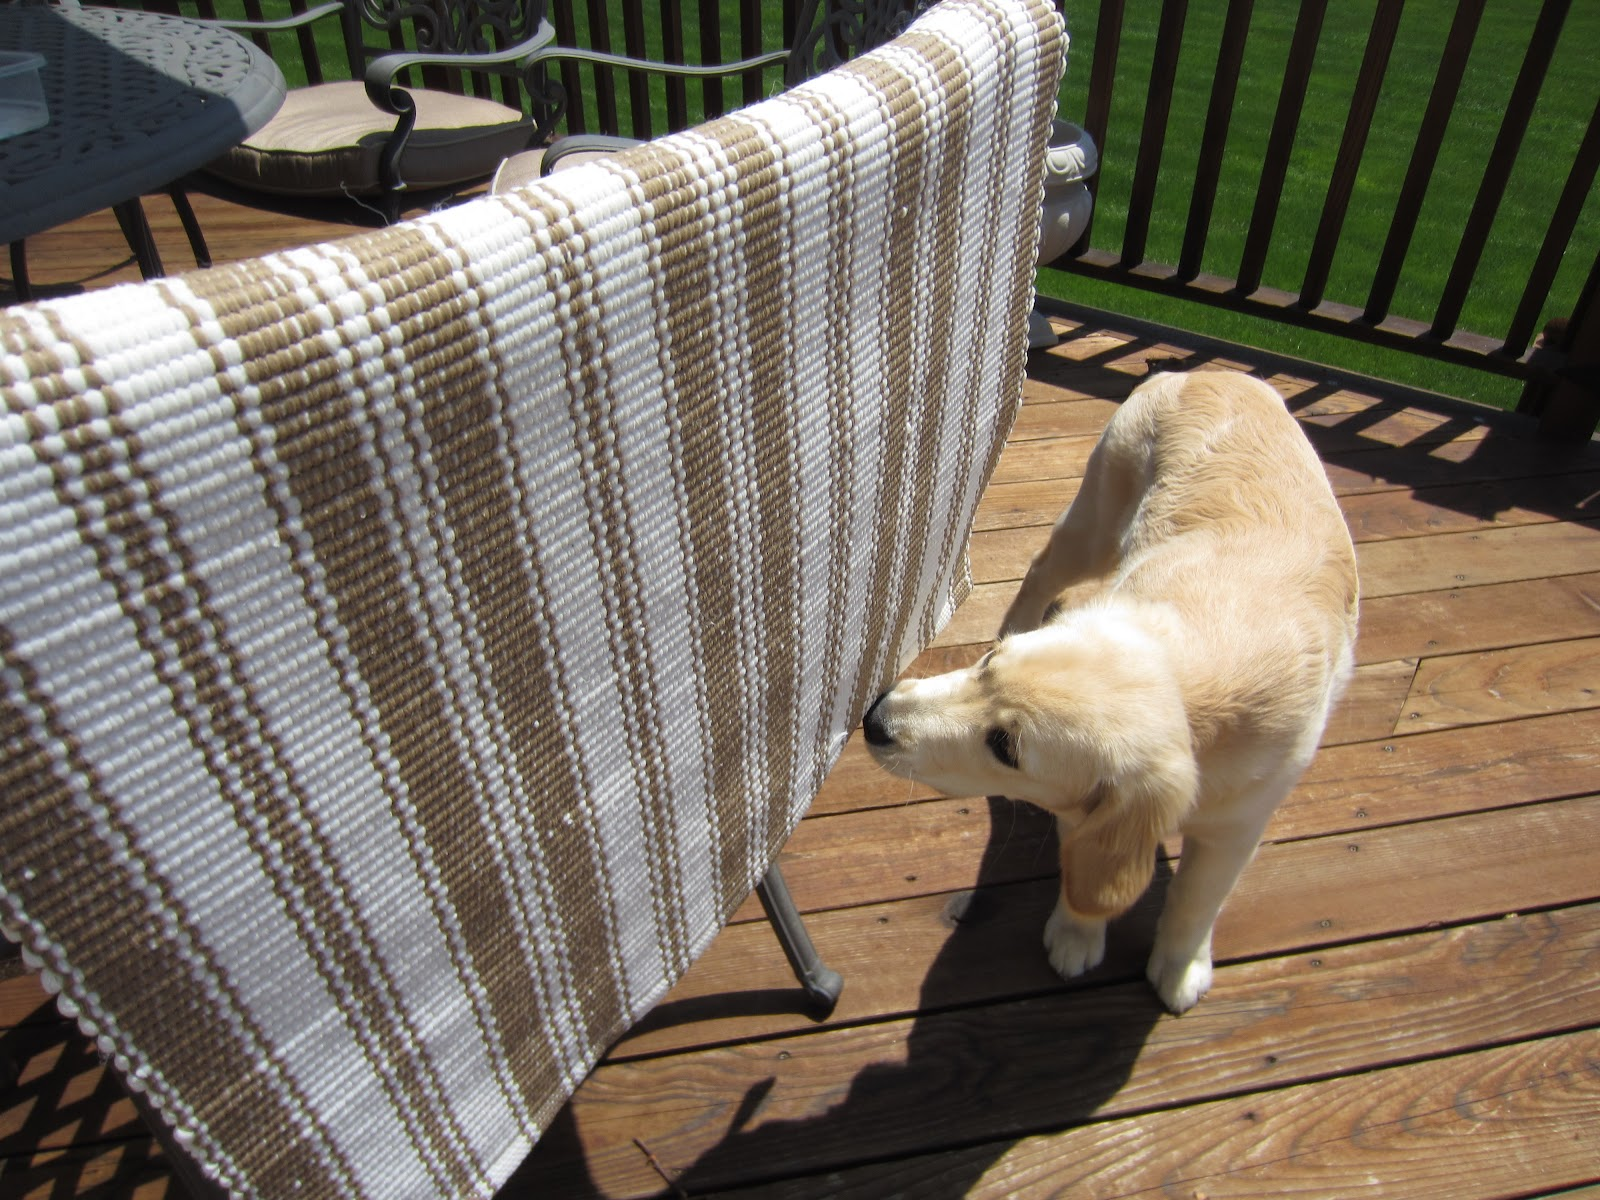 Air drying my Dash and Albert Rug - Golden Retriever approved!